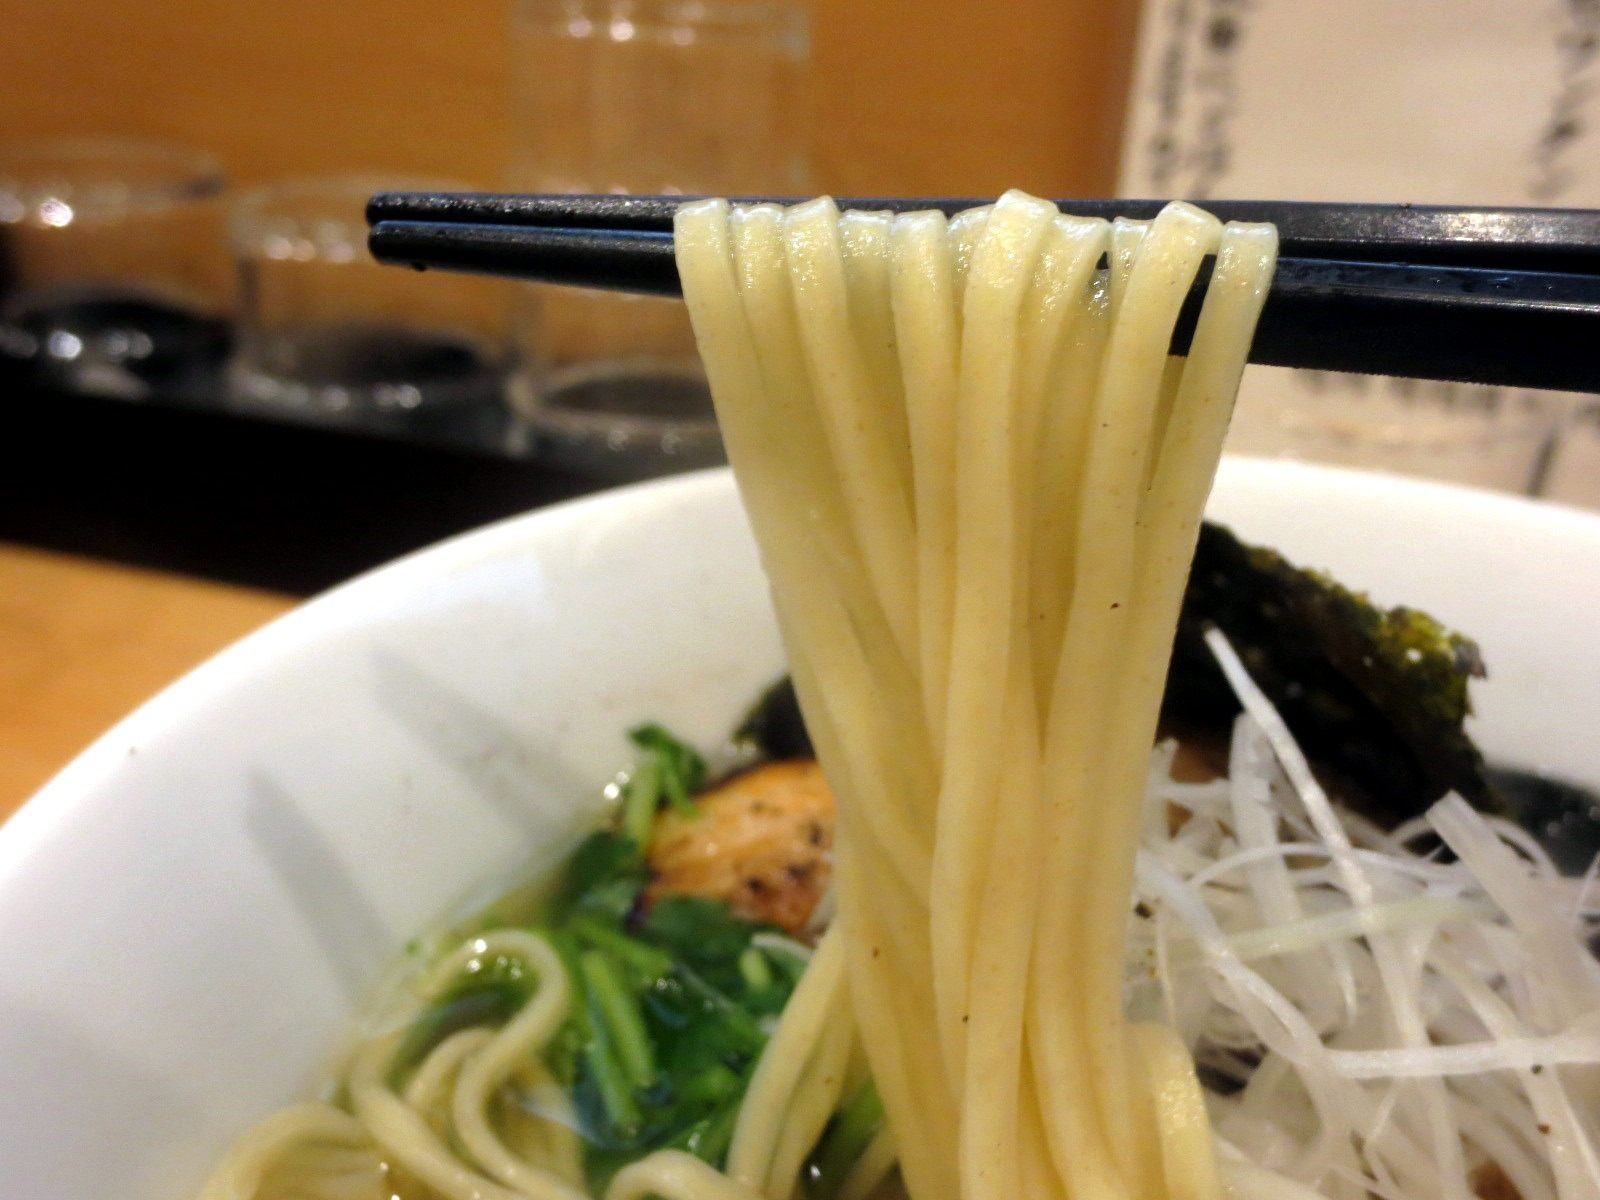 The noodles were straight and flat.